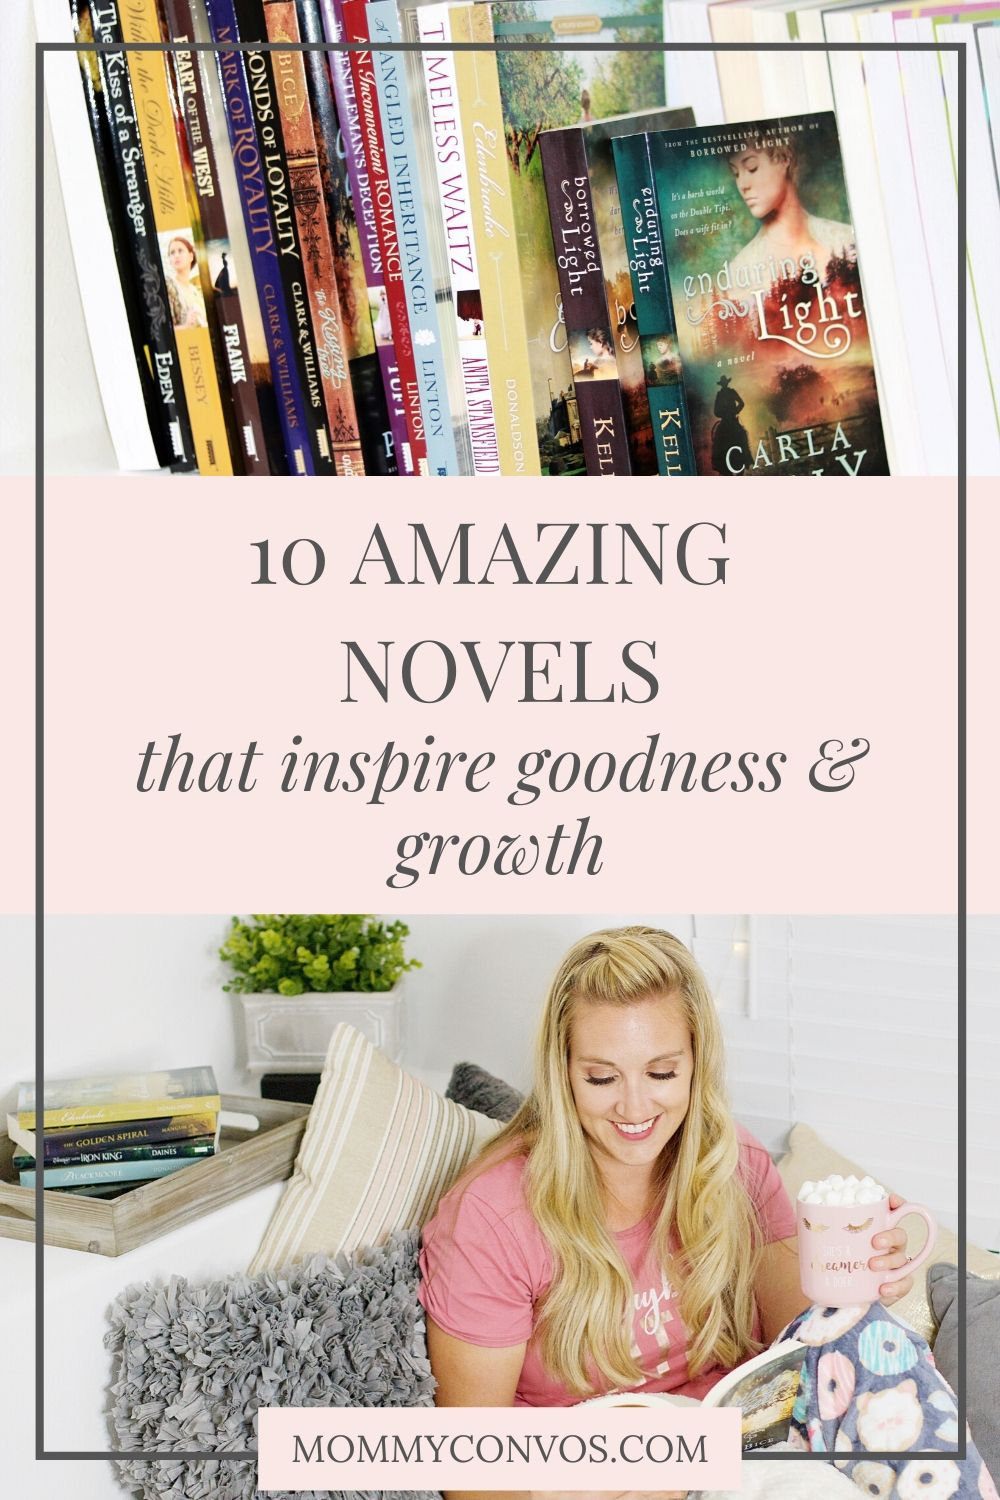 incredible novels that inspire goodness and growth, quarantine favorites, audio book list, top books, best novels, top LDS authors, fiction novels, top rated books for moms, novels that inspire